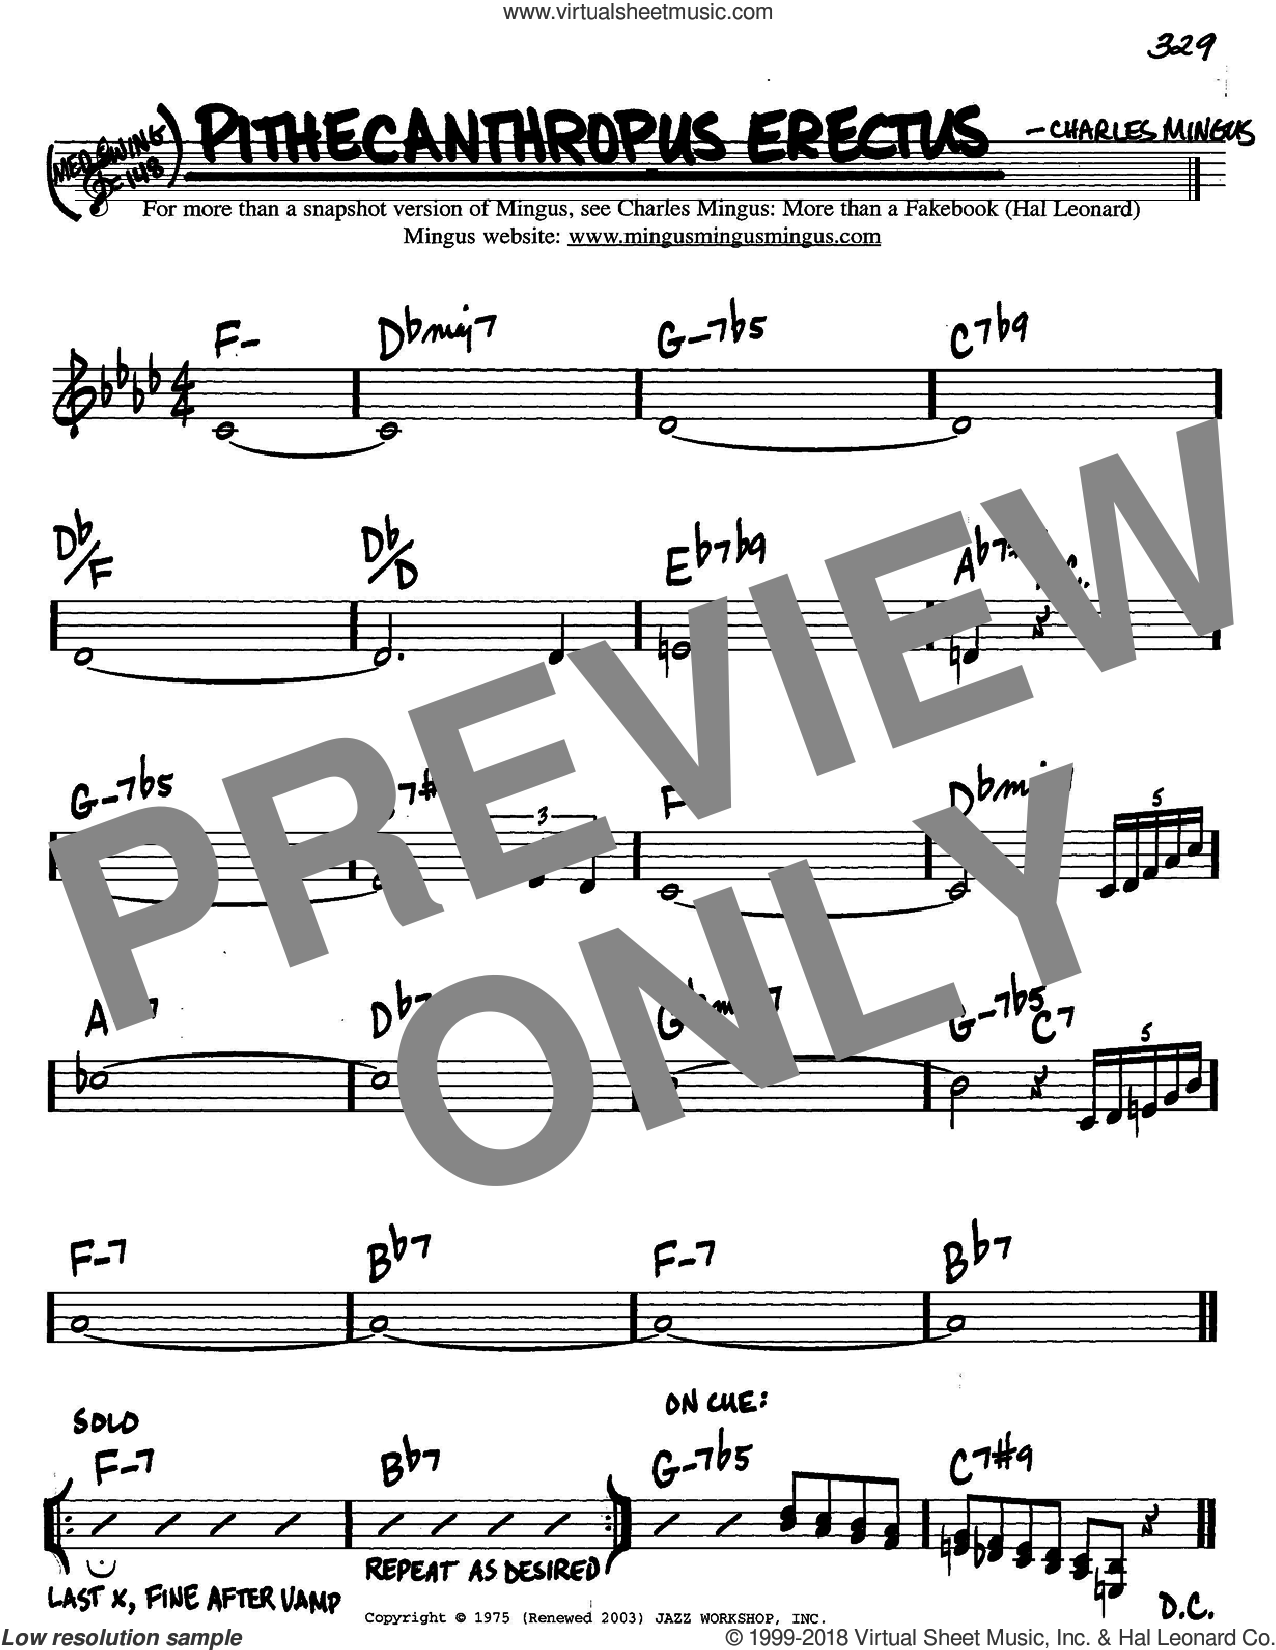 Pithecanthropus Erectus sheet music for voice and other instruments (in C) by Charles Mingus, intermediate skill level